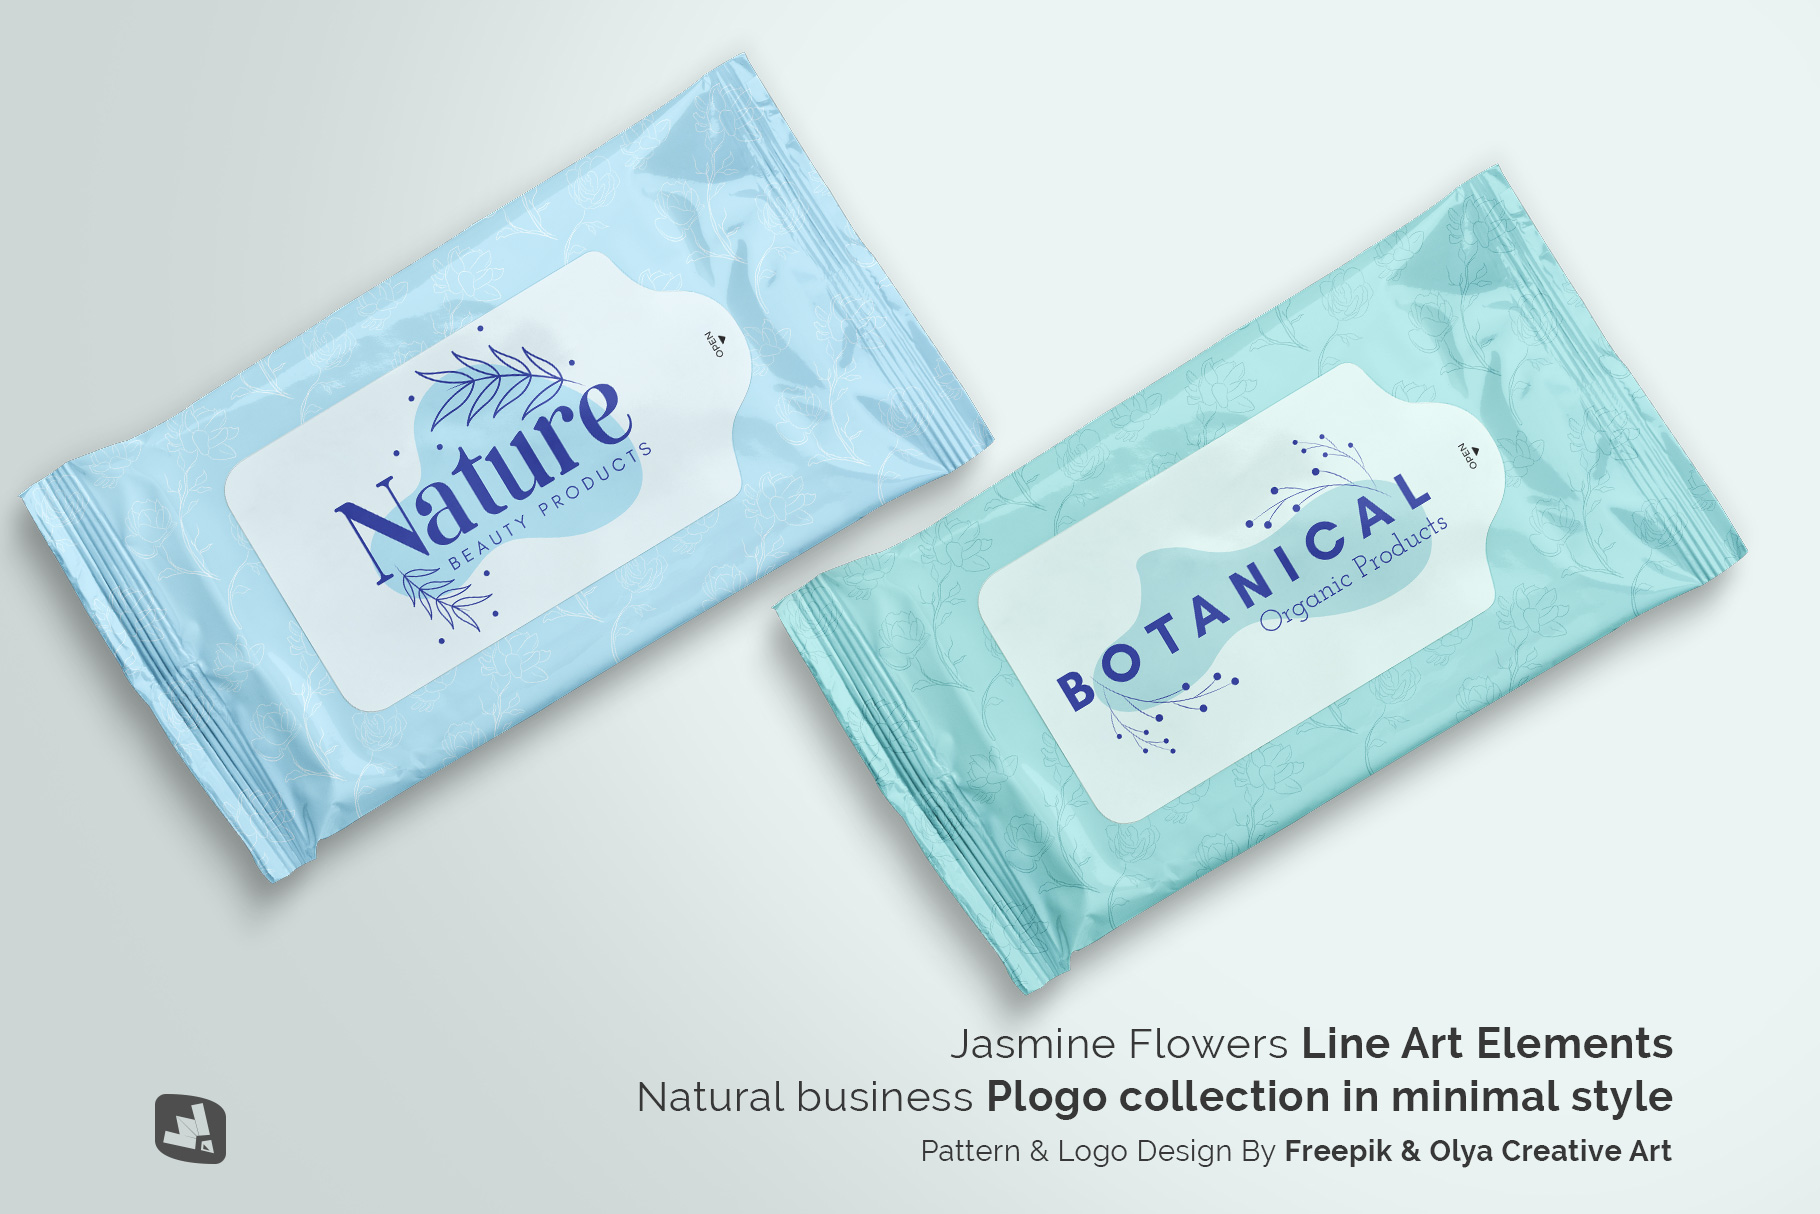 designer's credit of the disposable wipes packaging mockup